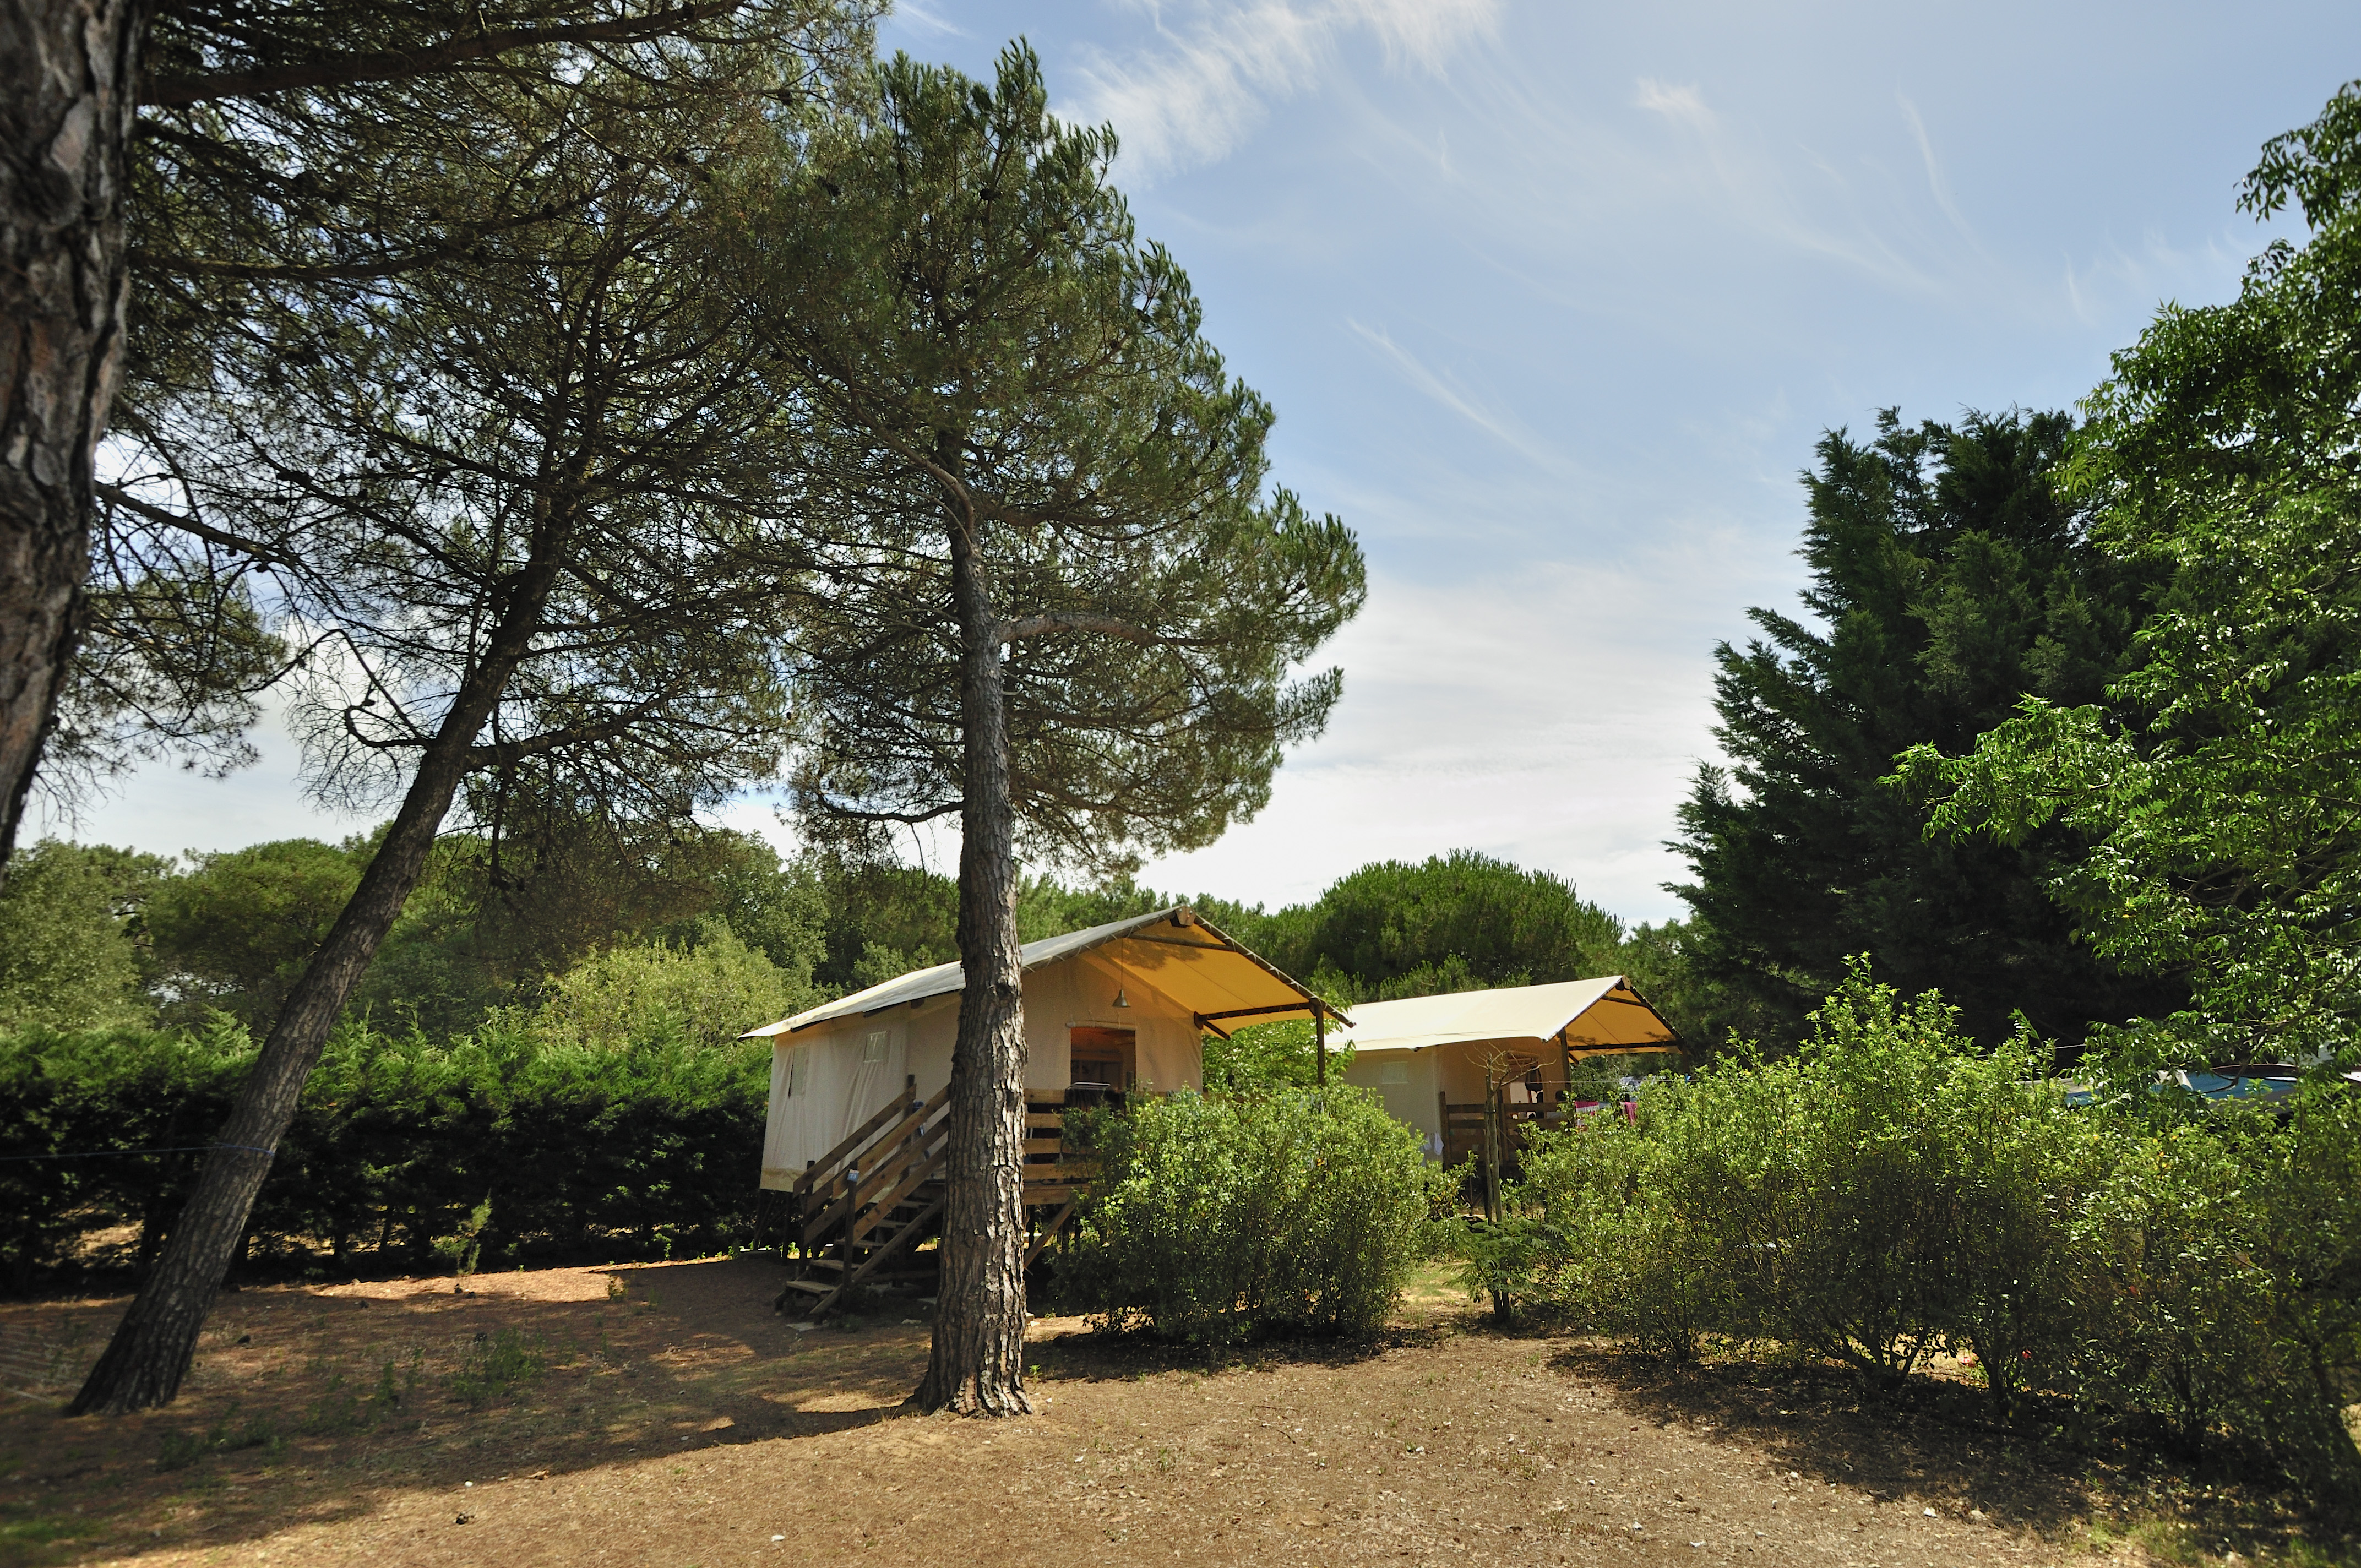 Camping le bel air ile de re atlantique nord france for Camping ile de re avec piscine